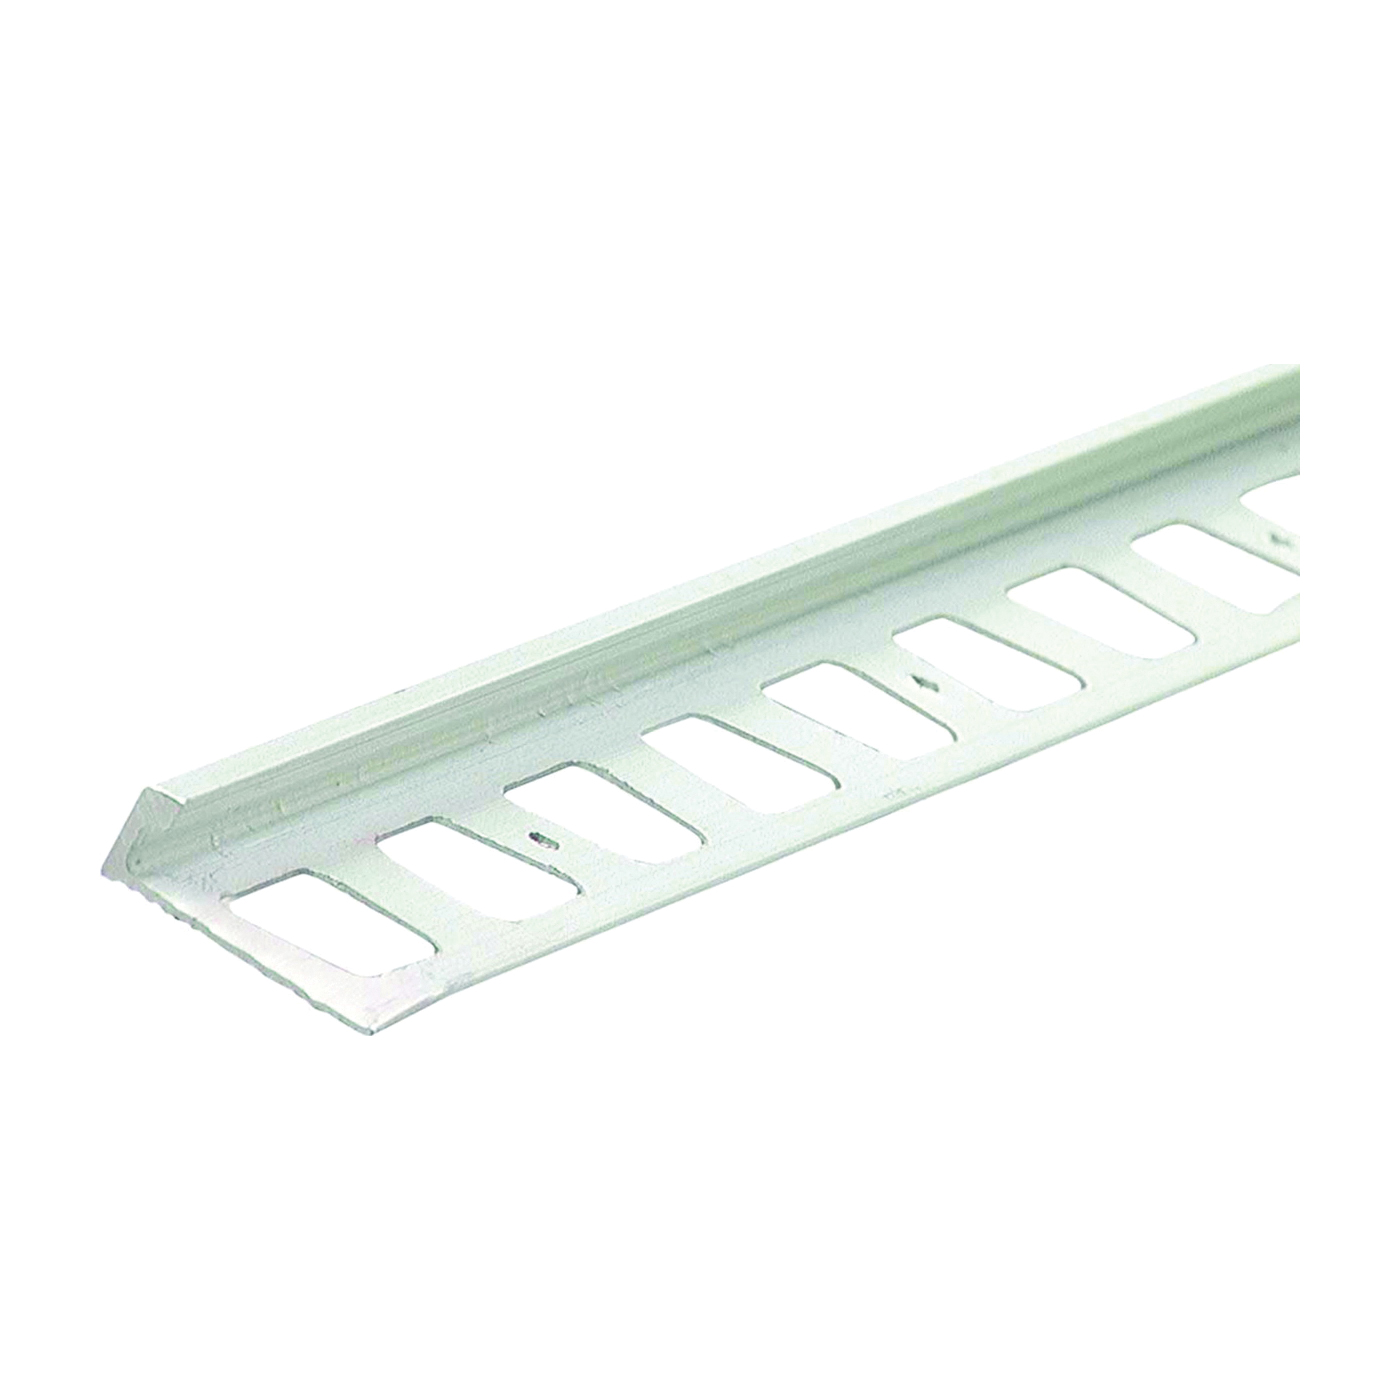 Picture of M-D 31351 Tile Edge, 96 in L, 3/8 in W, Ceramic, Clear Anodized